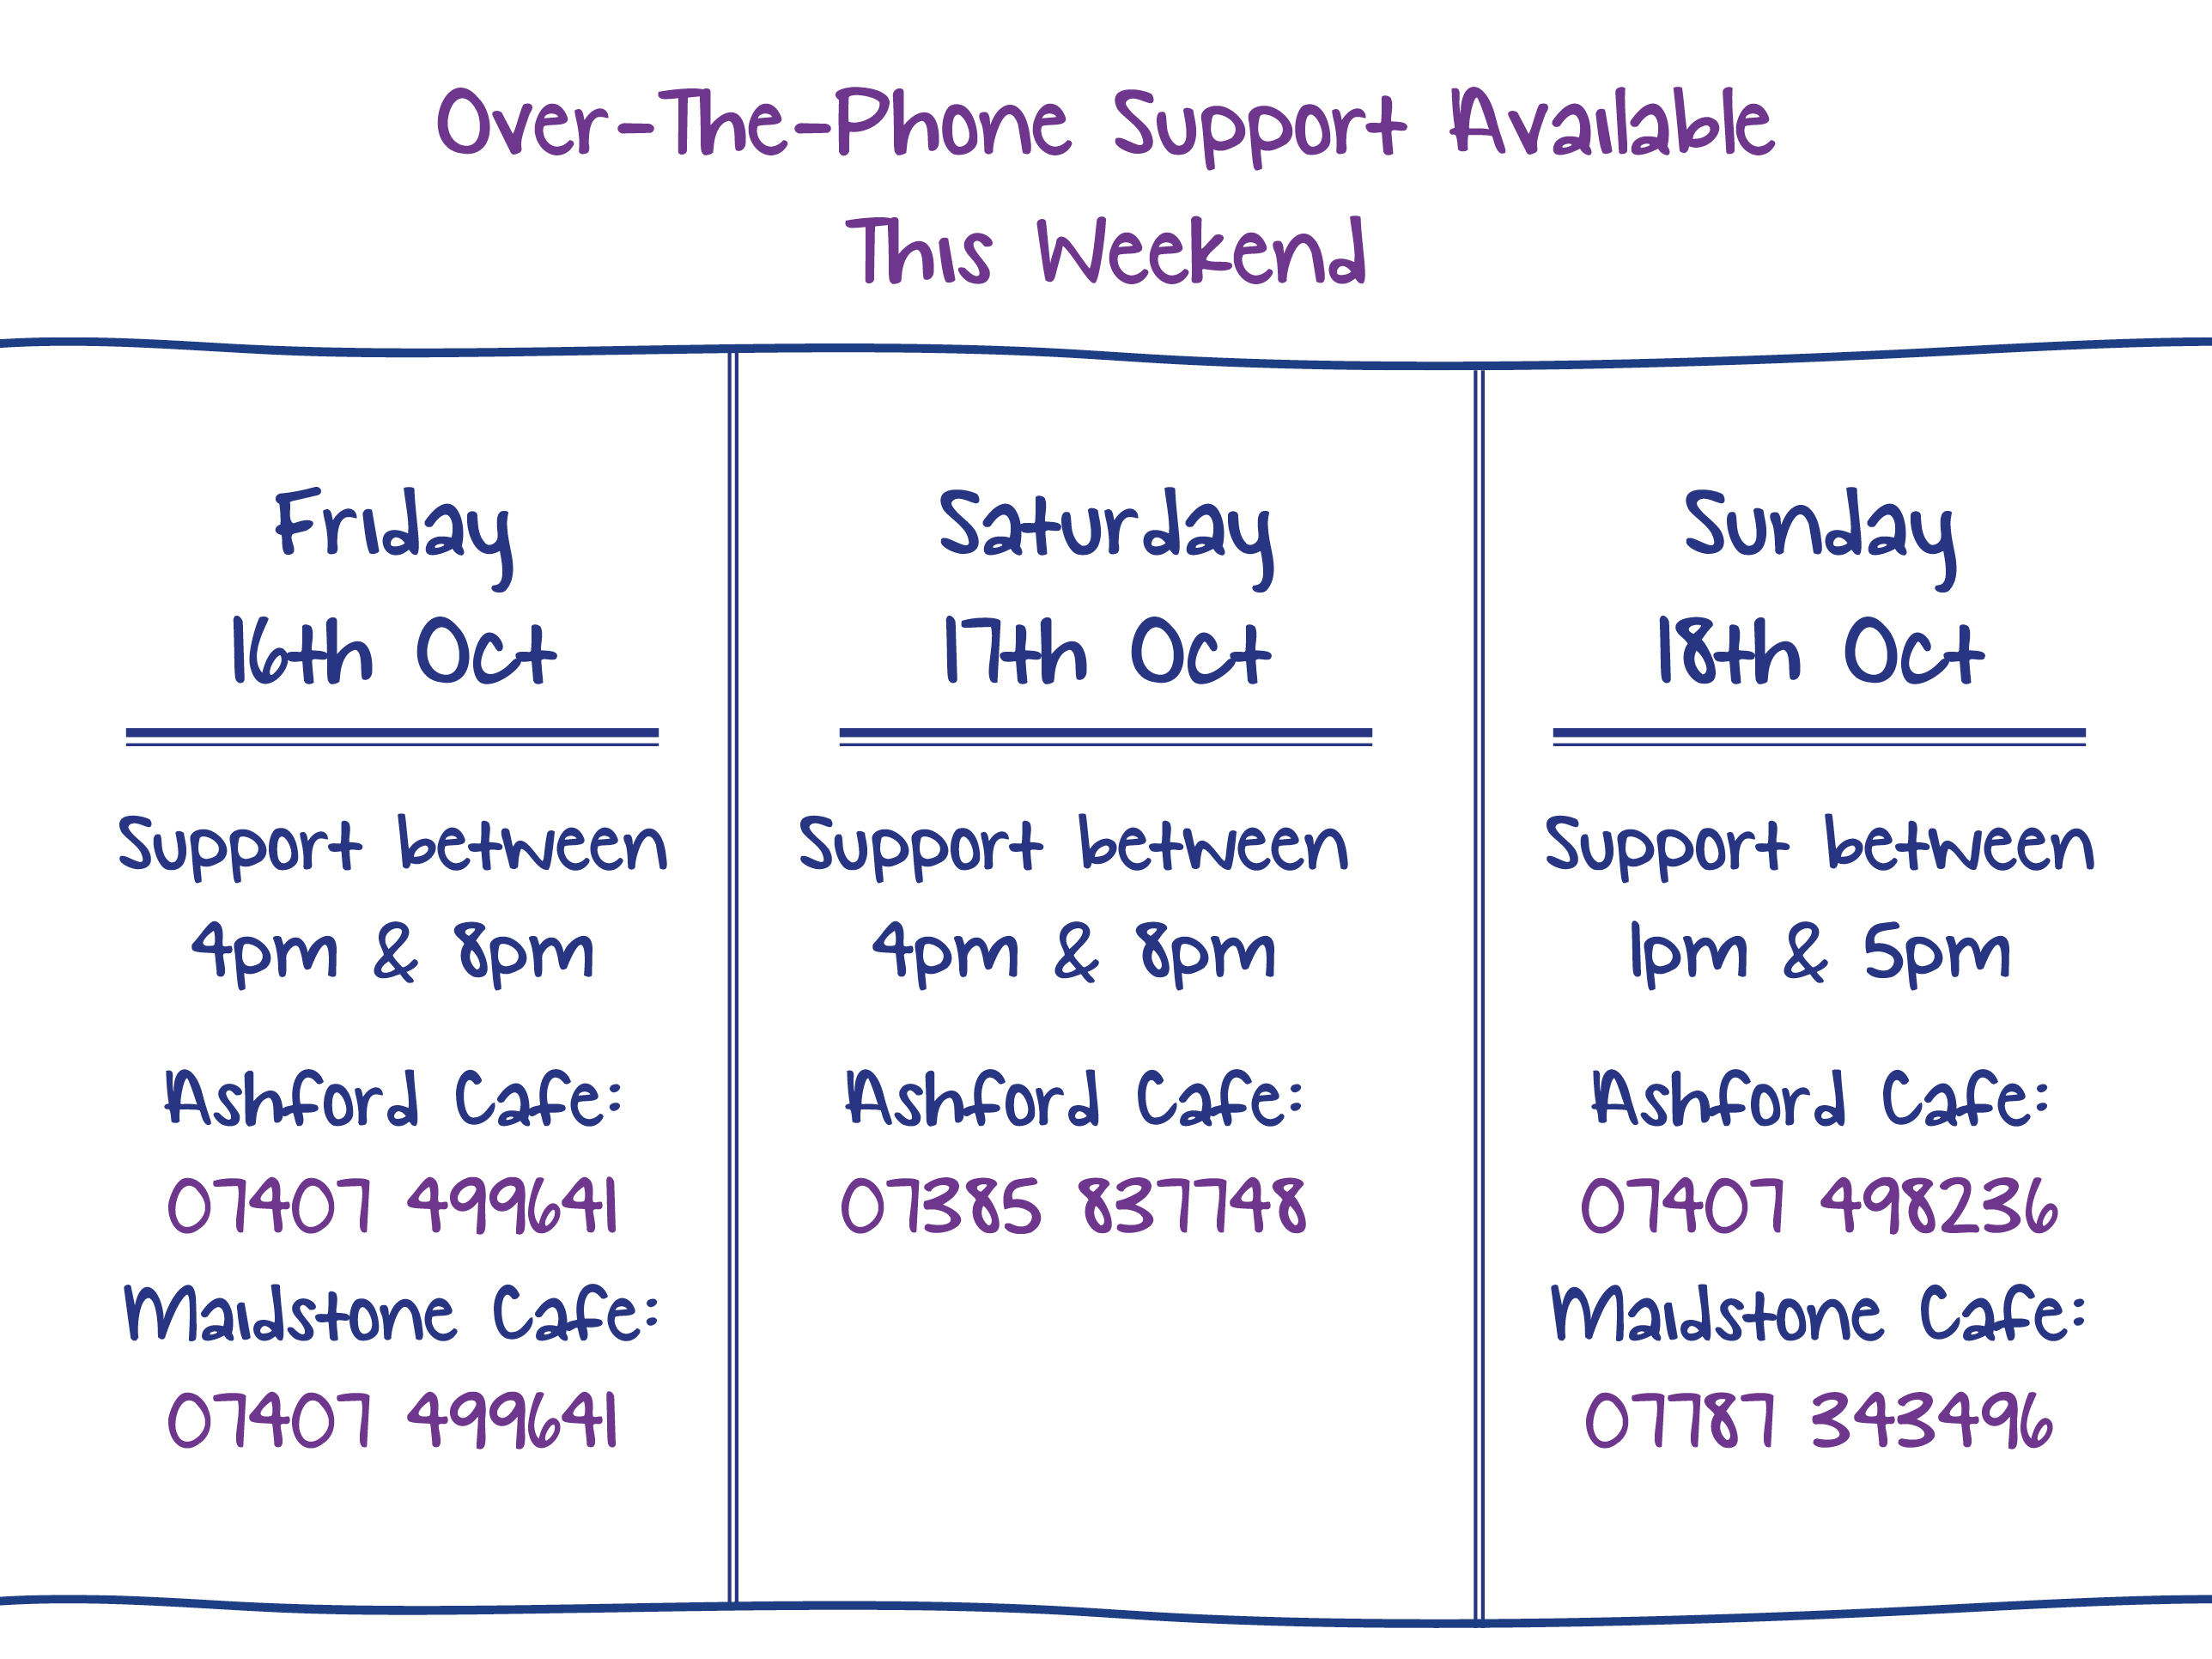 Over-The-Phone Support Available This Weekend - Friday 16th Oct. Support between 4pm & 8pm Ashford Cafe: 07407 499641 Maidstone Cafe: 07407 499641. Saturday 17th Oct. Support between 4pm & 8pm Ashford Cafe: 07385 837748. Sunday 18th Oct. Support between 1pm & 5pm Ashford Cafe: 07407 498236 Maidstone Cafe: 07787 343496.